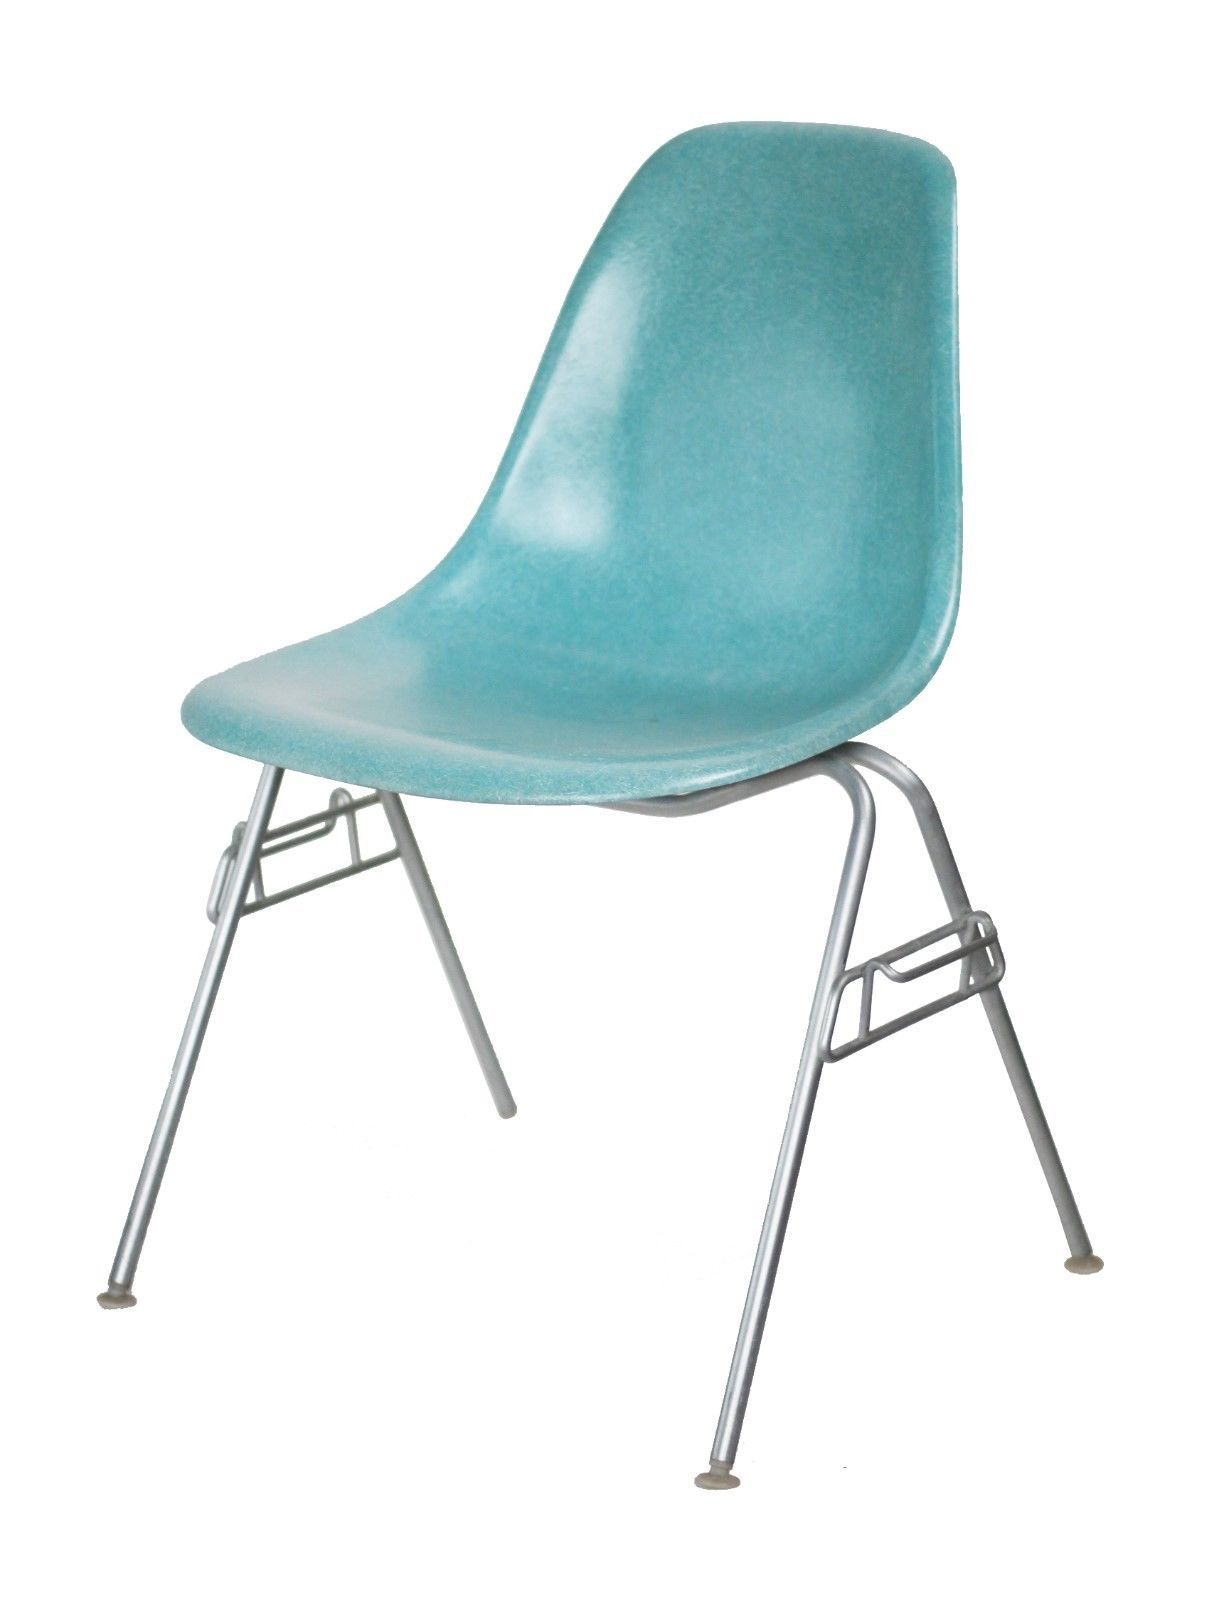 Vintage Eames Herman Miller Eames Side Shell Chair In Turquoise